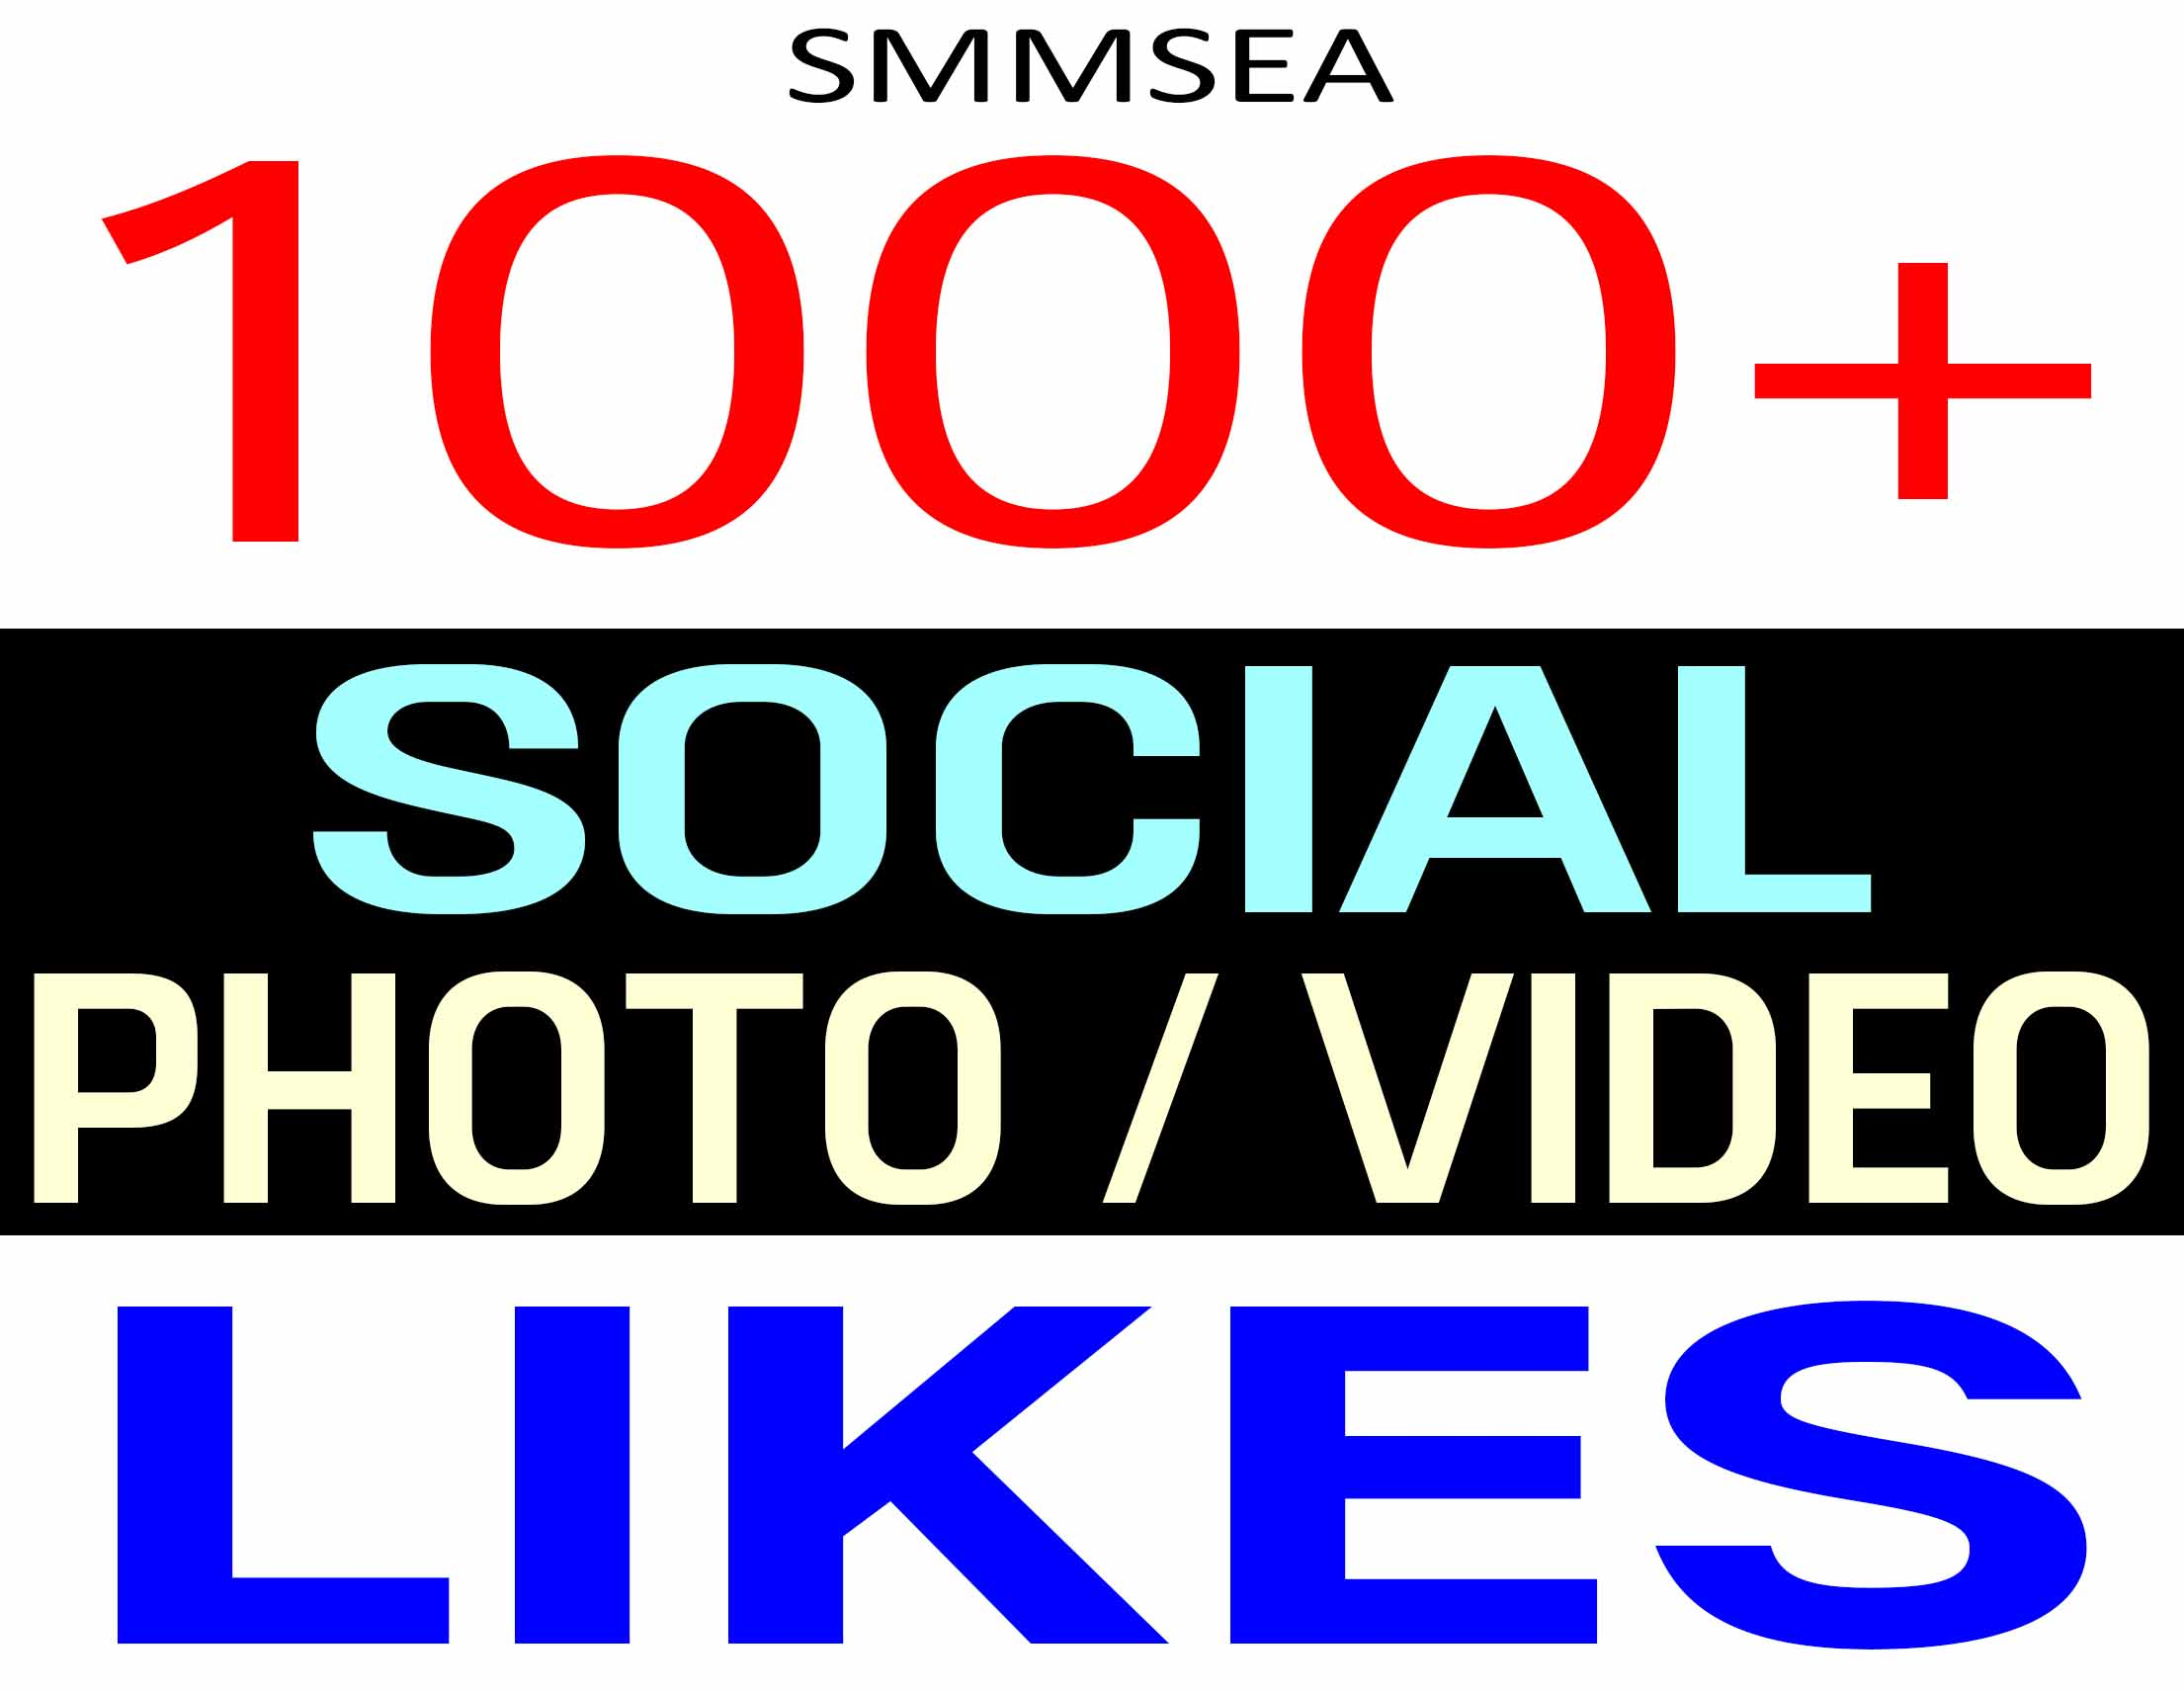 ADD 1000+ SOCIAL PHOTO OR VIDEO PROMOTION REAL ORGANIC AND HIGH QUALITY WITH NON DROP GUARANTEED